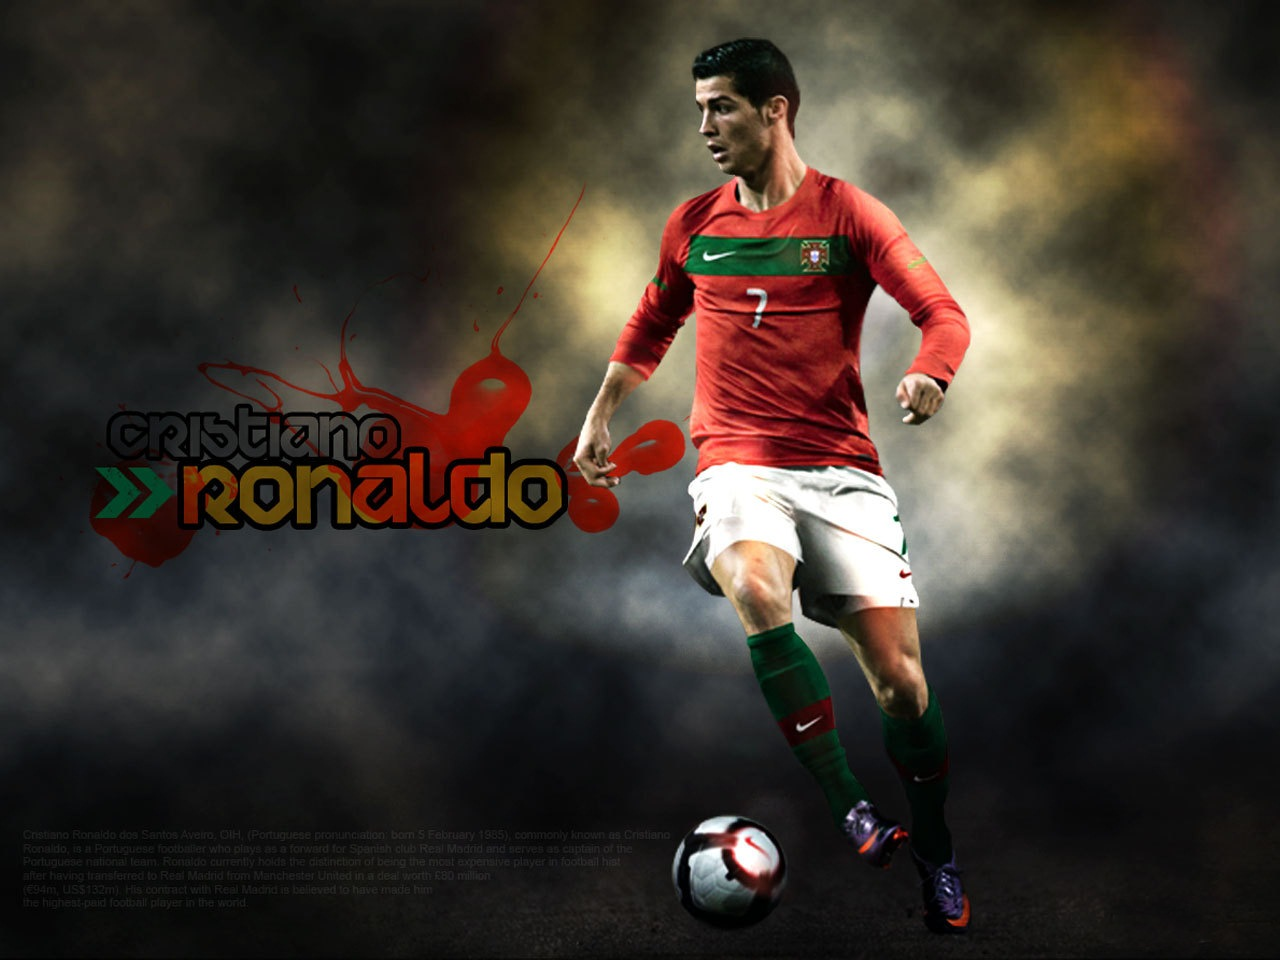 Cristiano Ronaldo HD Wallpapers 2012 2013 All About HD Wallpapers 1280x960